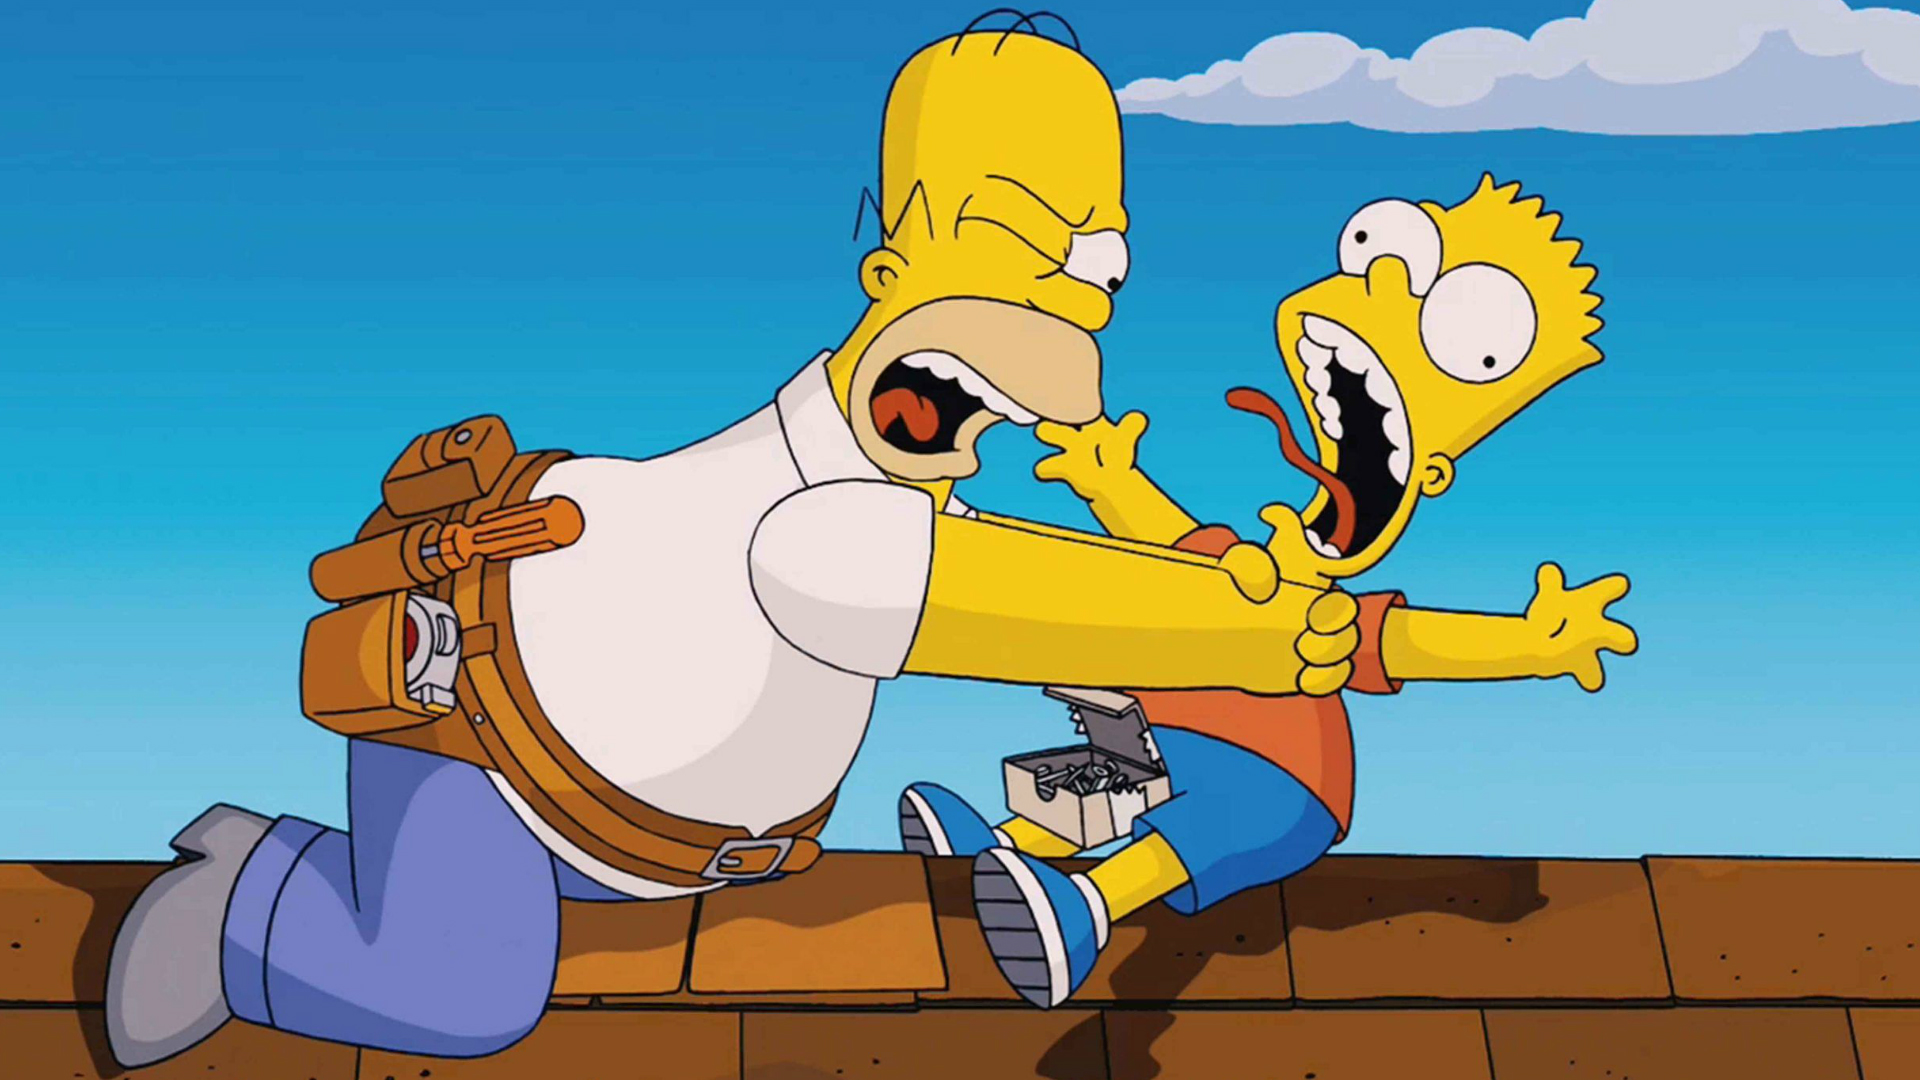 Homer chokes Bart in The Simpsons